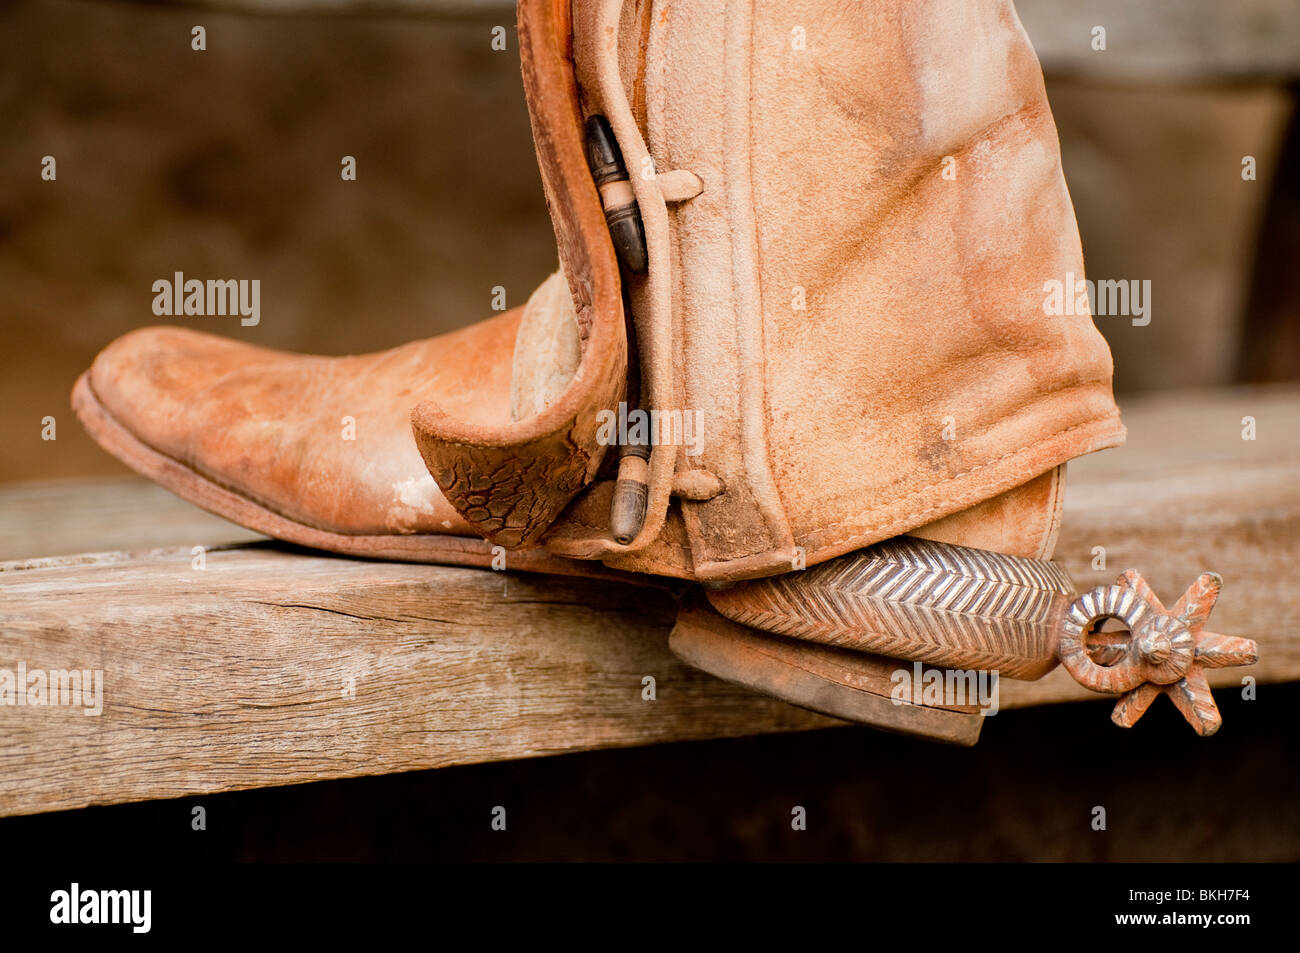 Guadalajara, Mexico, Charro ( Mexican Cowboy) wearing chaps, spurs and boots. Club Charro Lienzo, Jalisco - Stock Image